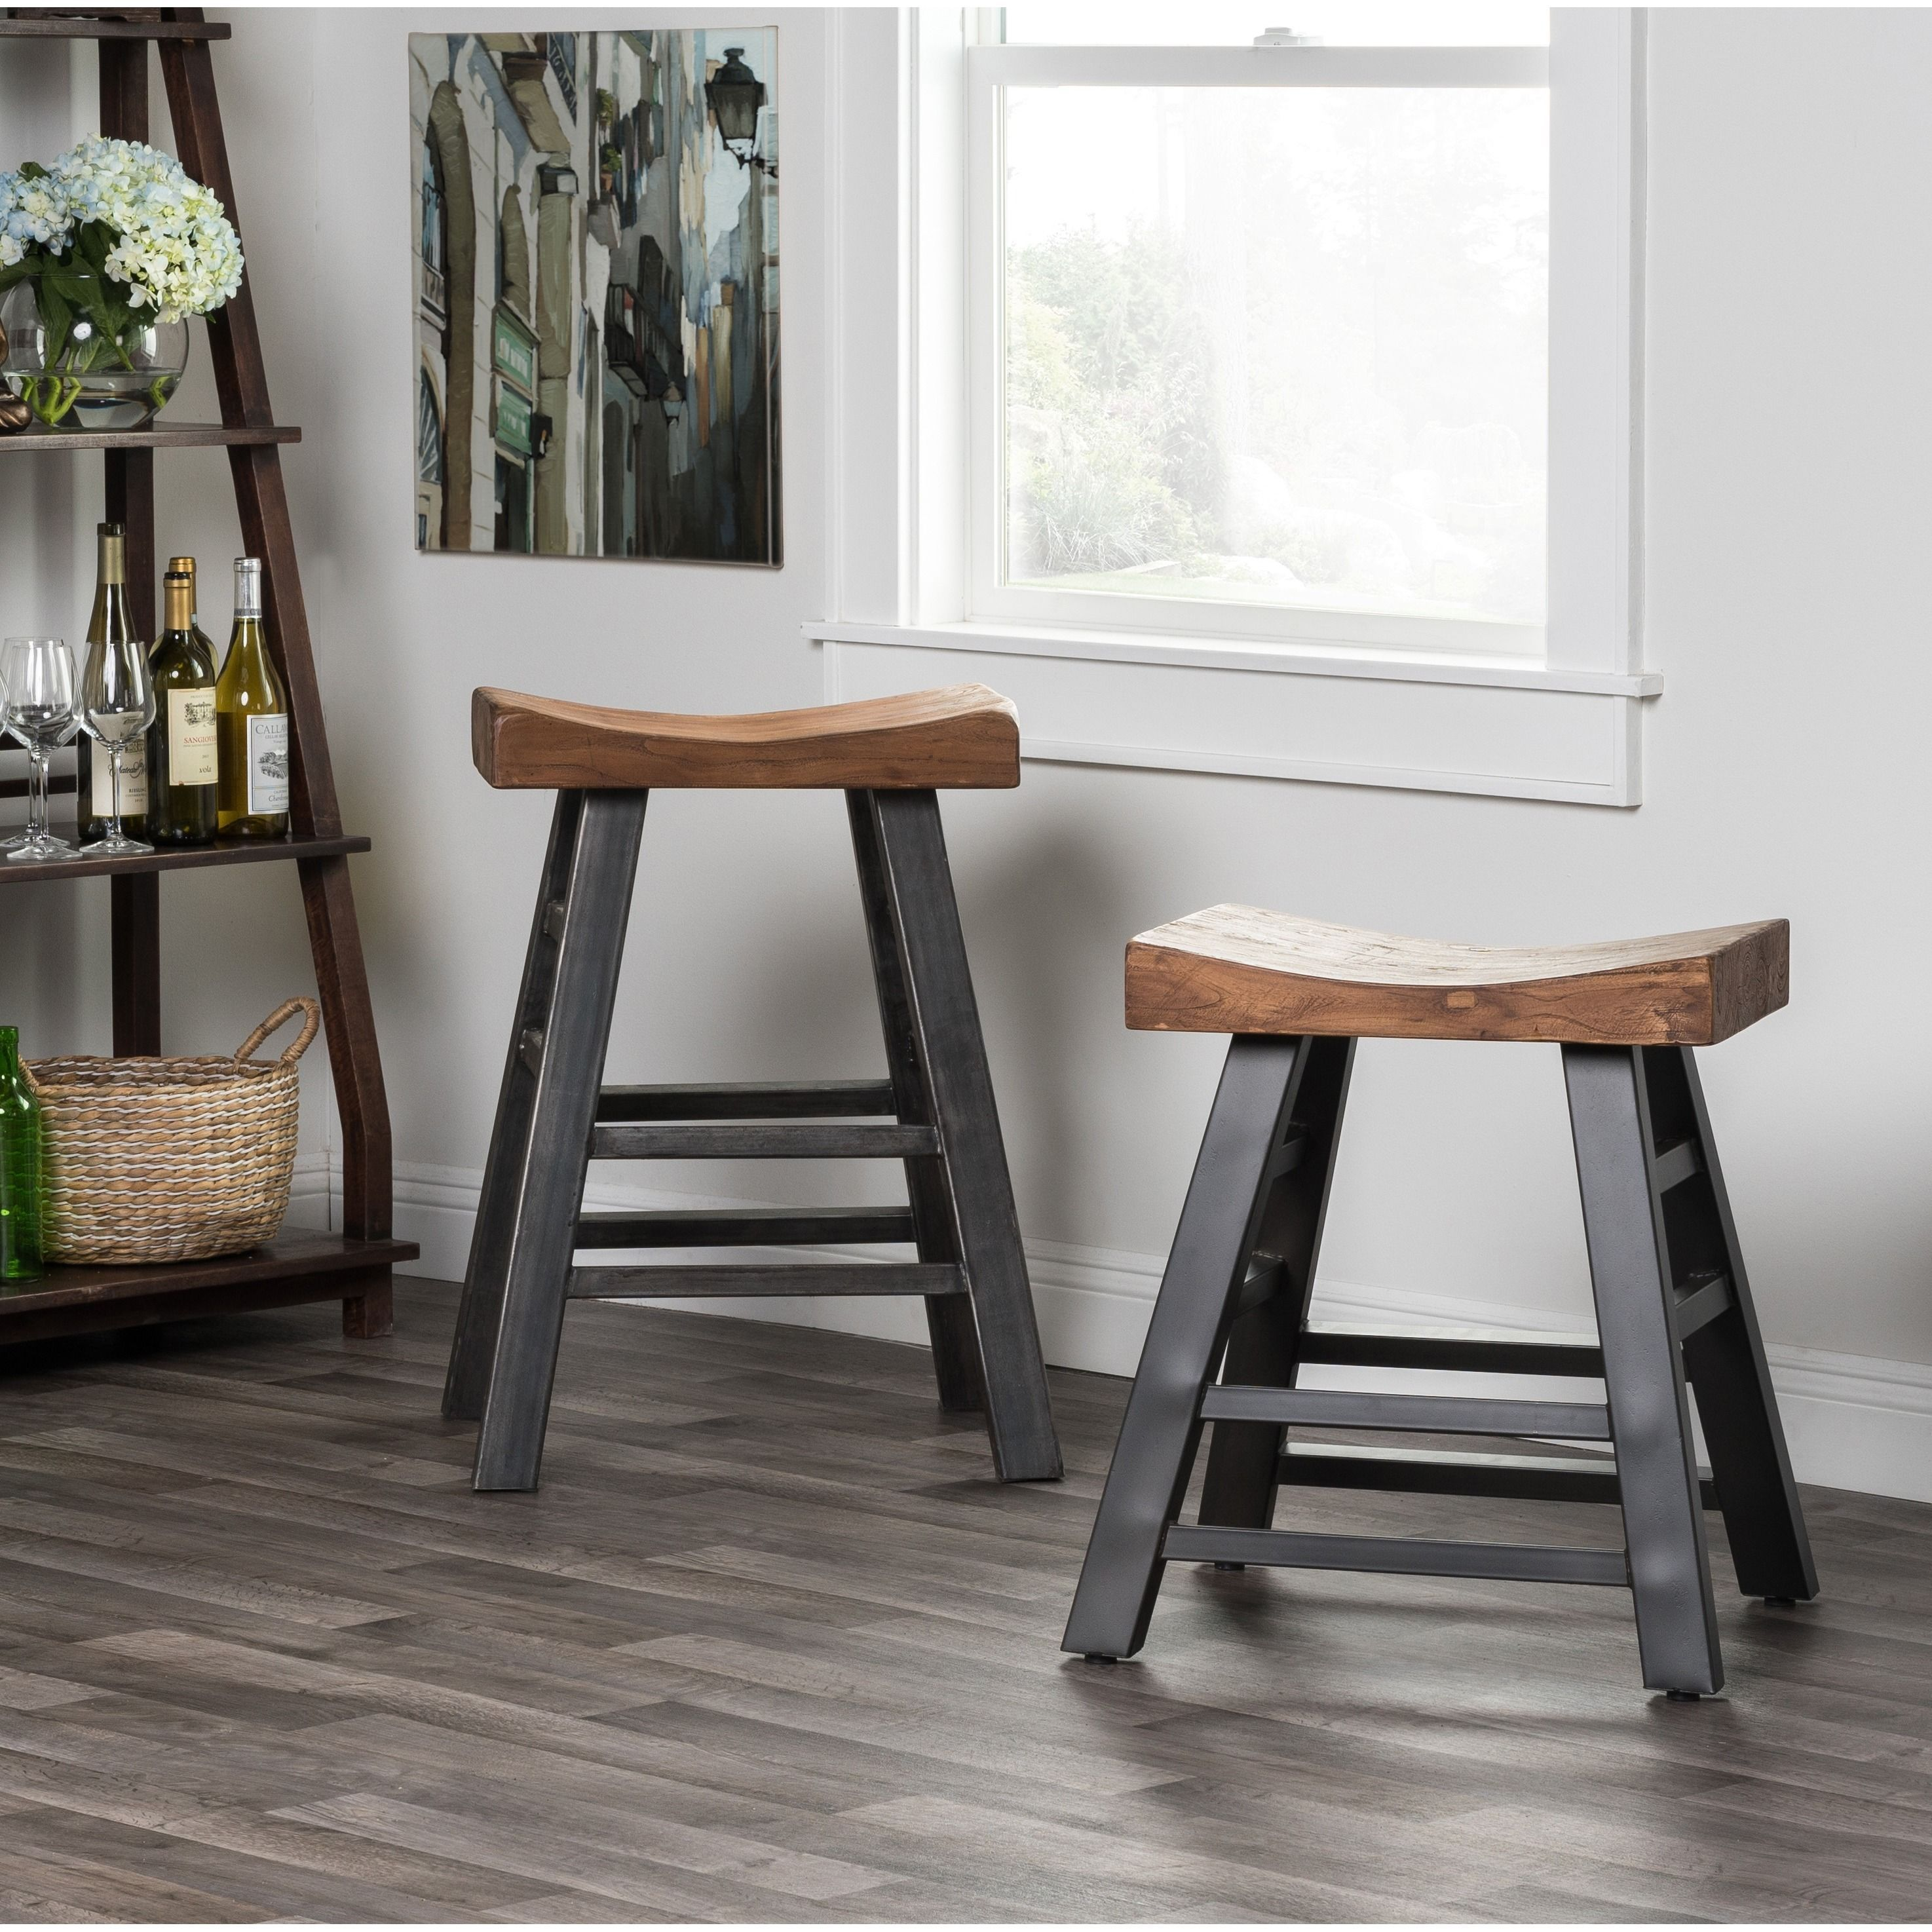 Awesome Counter Height for Stools